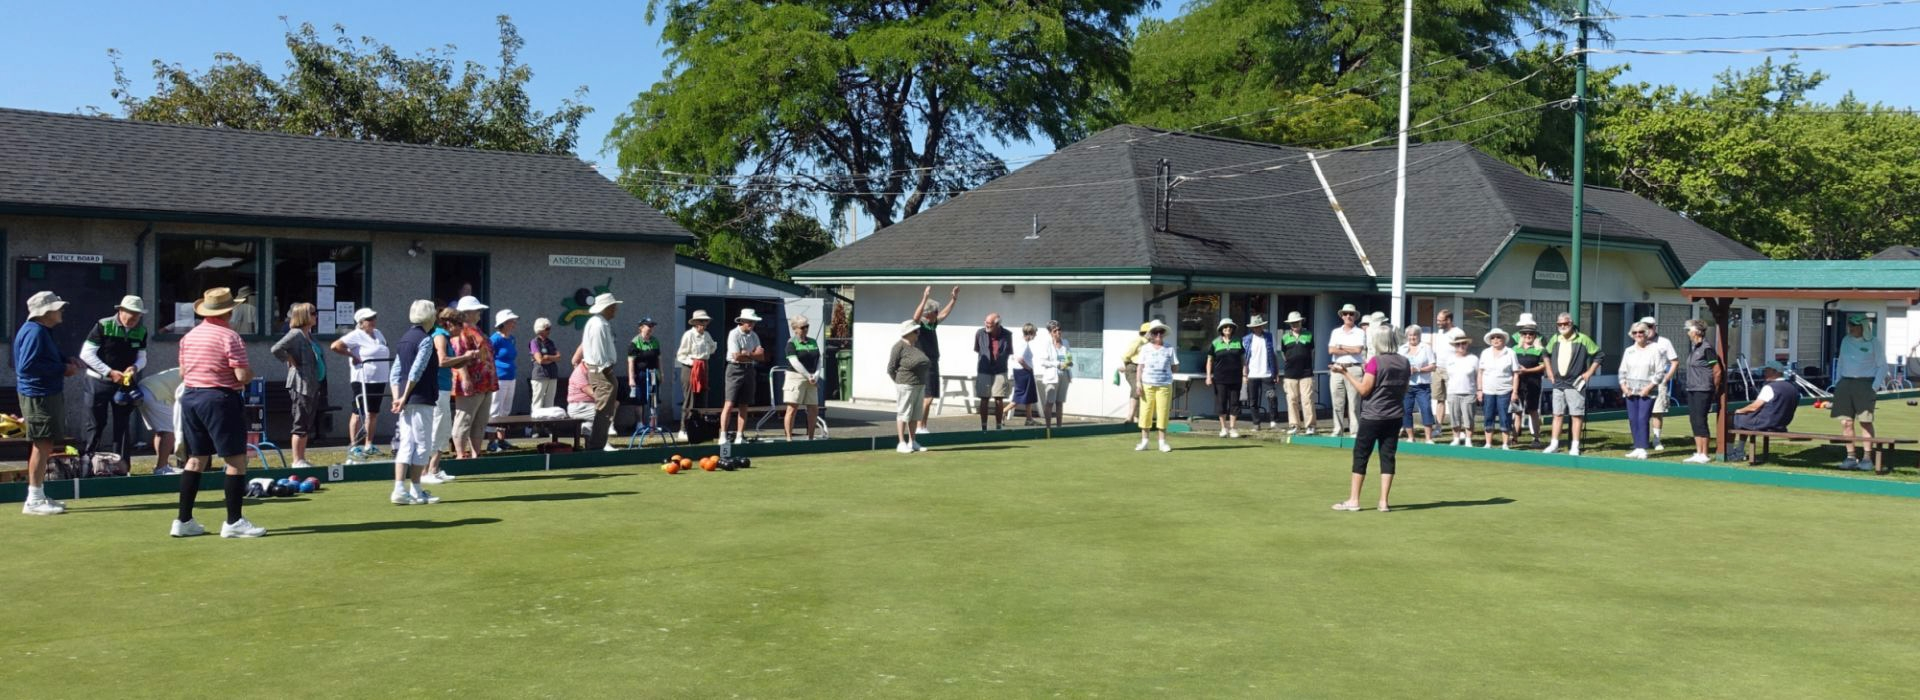 2018 Club Fun Day 2